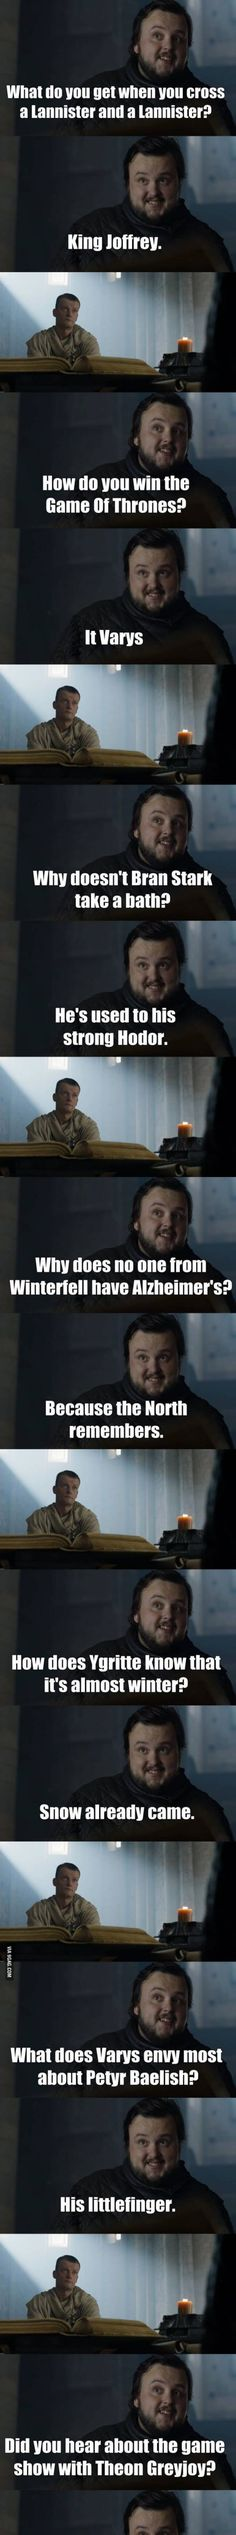 Best 21 Sam's jokes from Game of Thrones S6 Finale